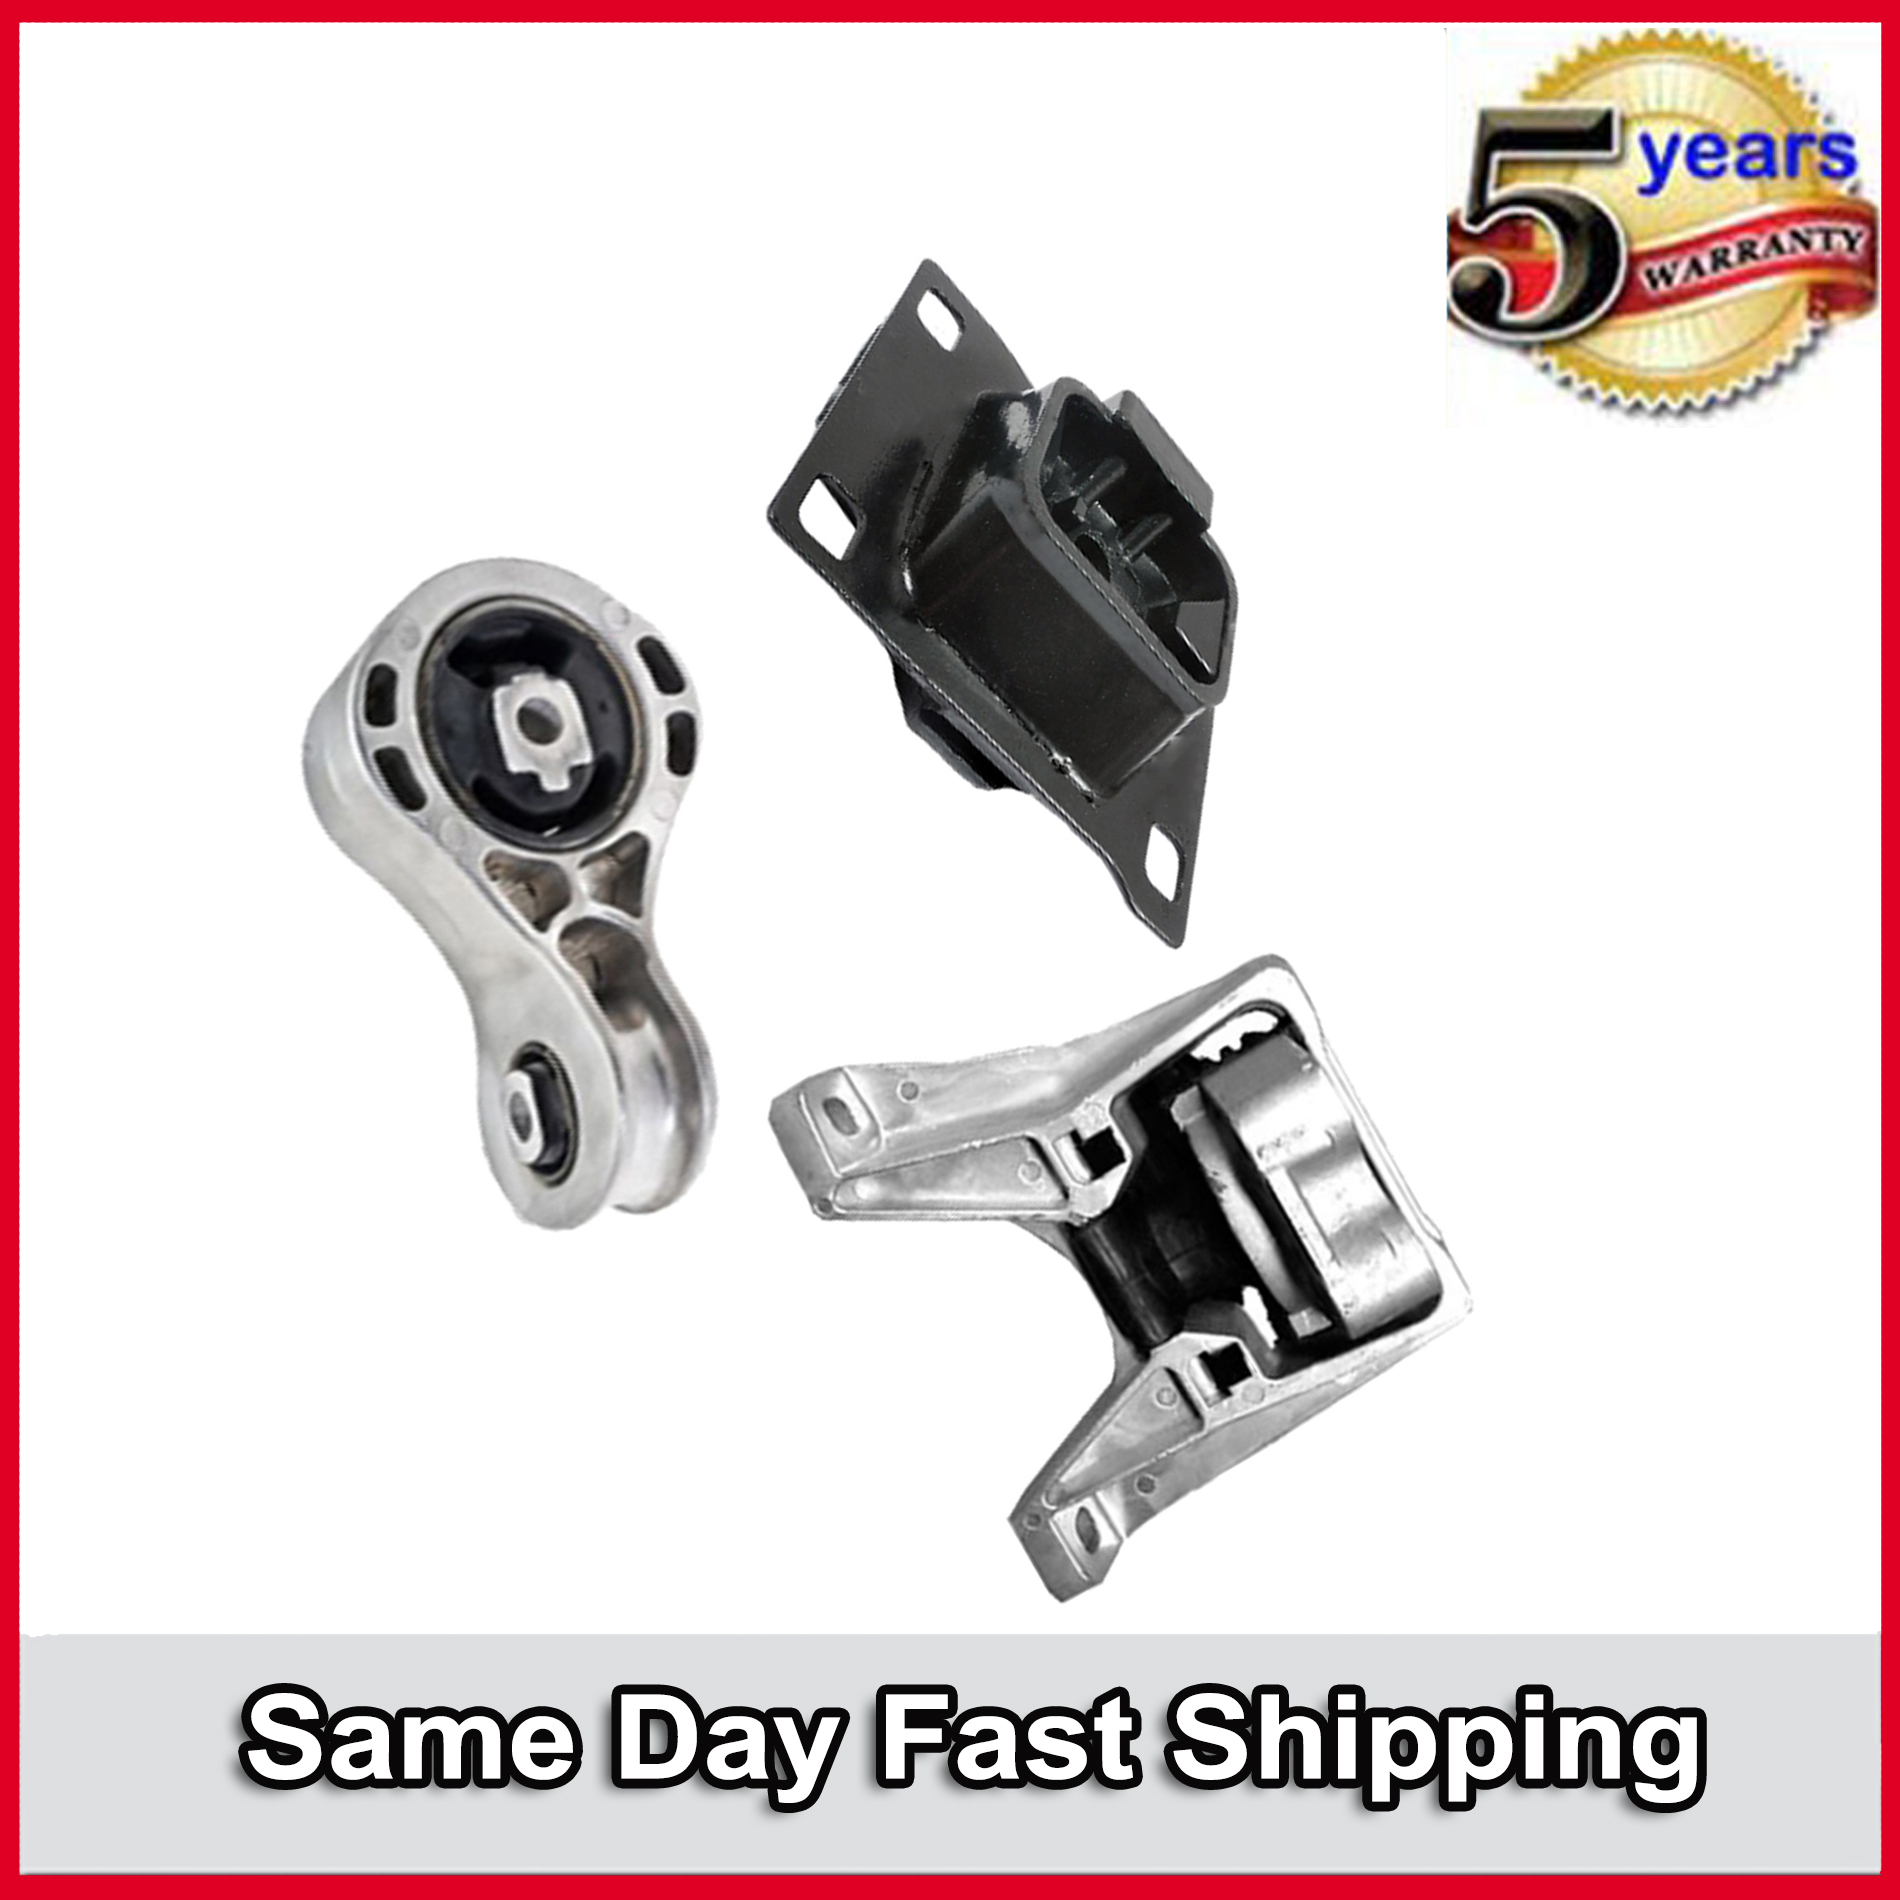 Engine Motor /& Trans Mount For 2008-2011 Ford Focus 2.0L Auto Set 5322 5495 2986